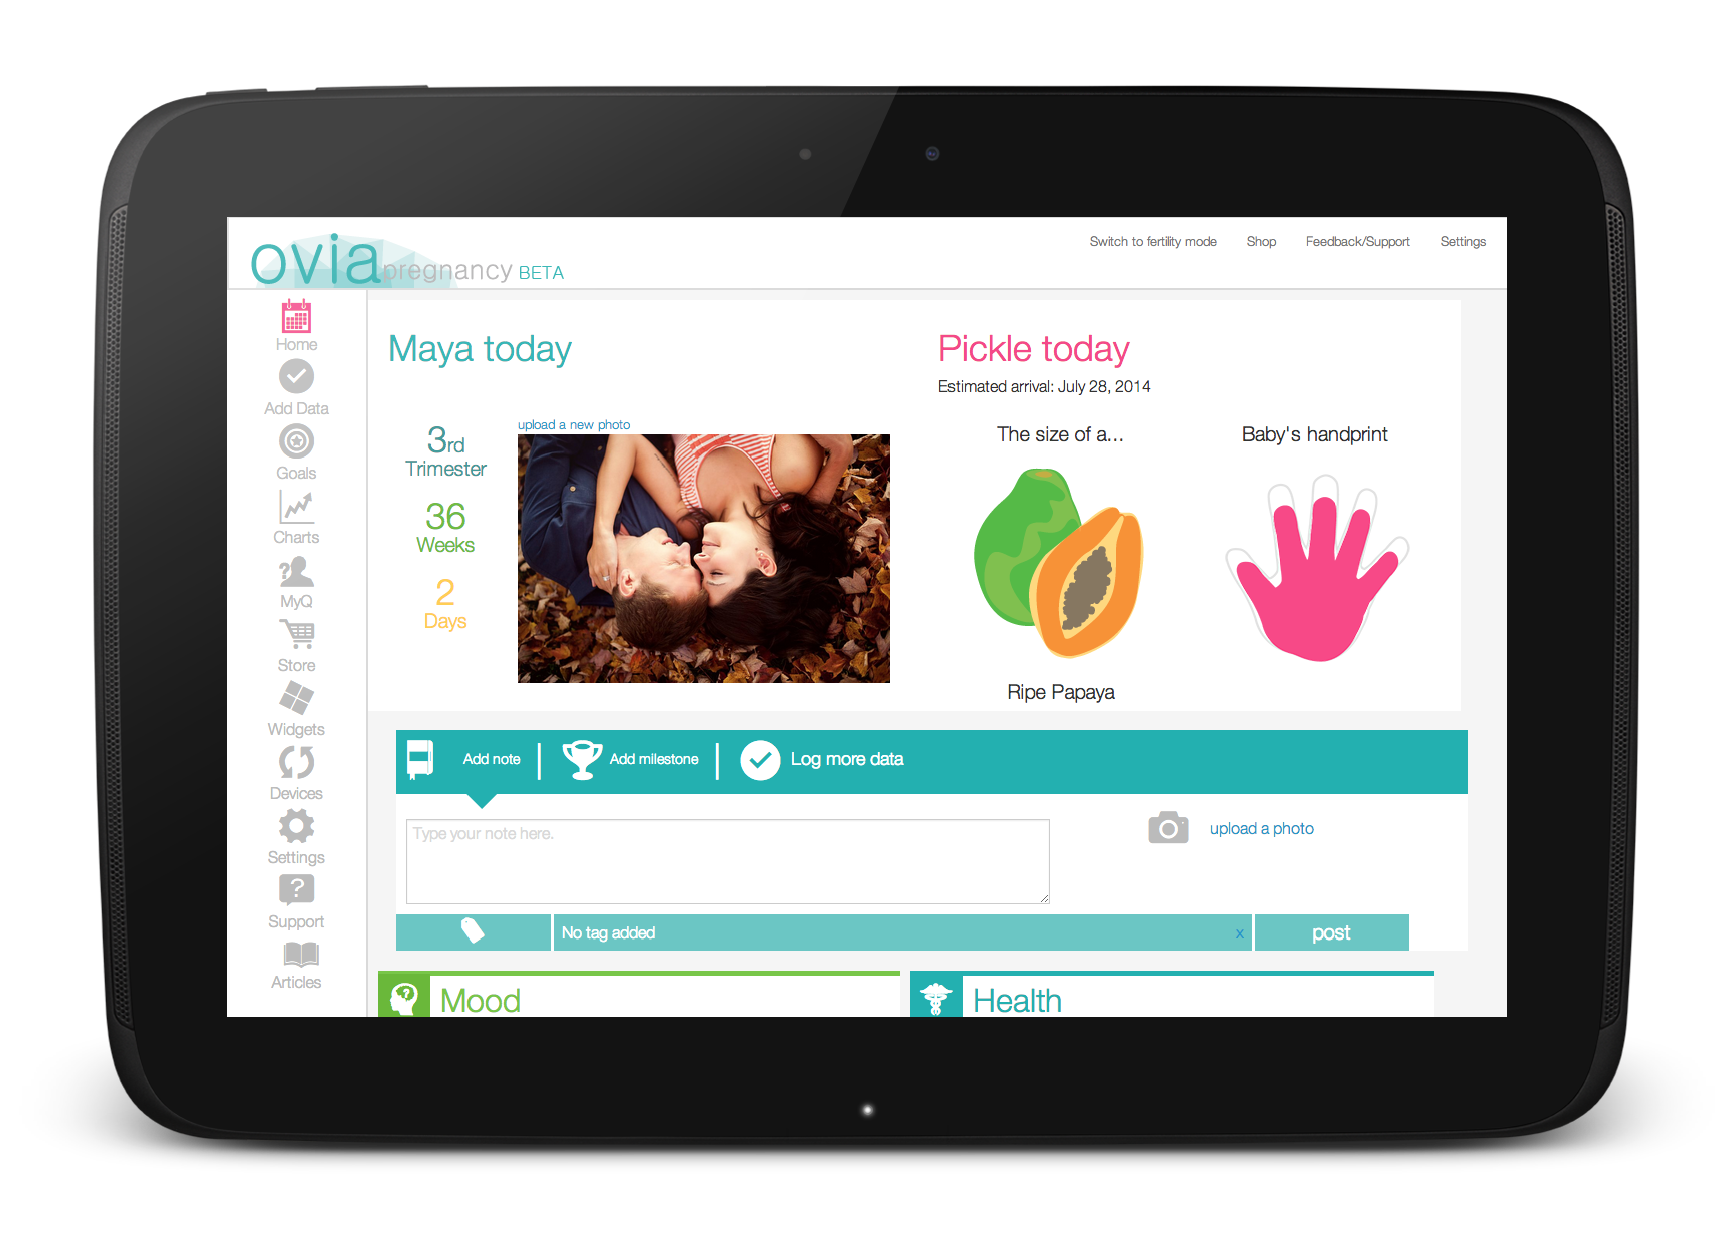 Ovia Pregnancy on a Nexus 10 Android device